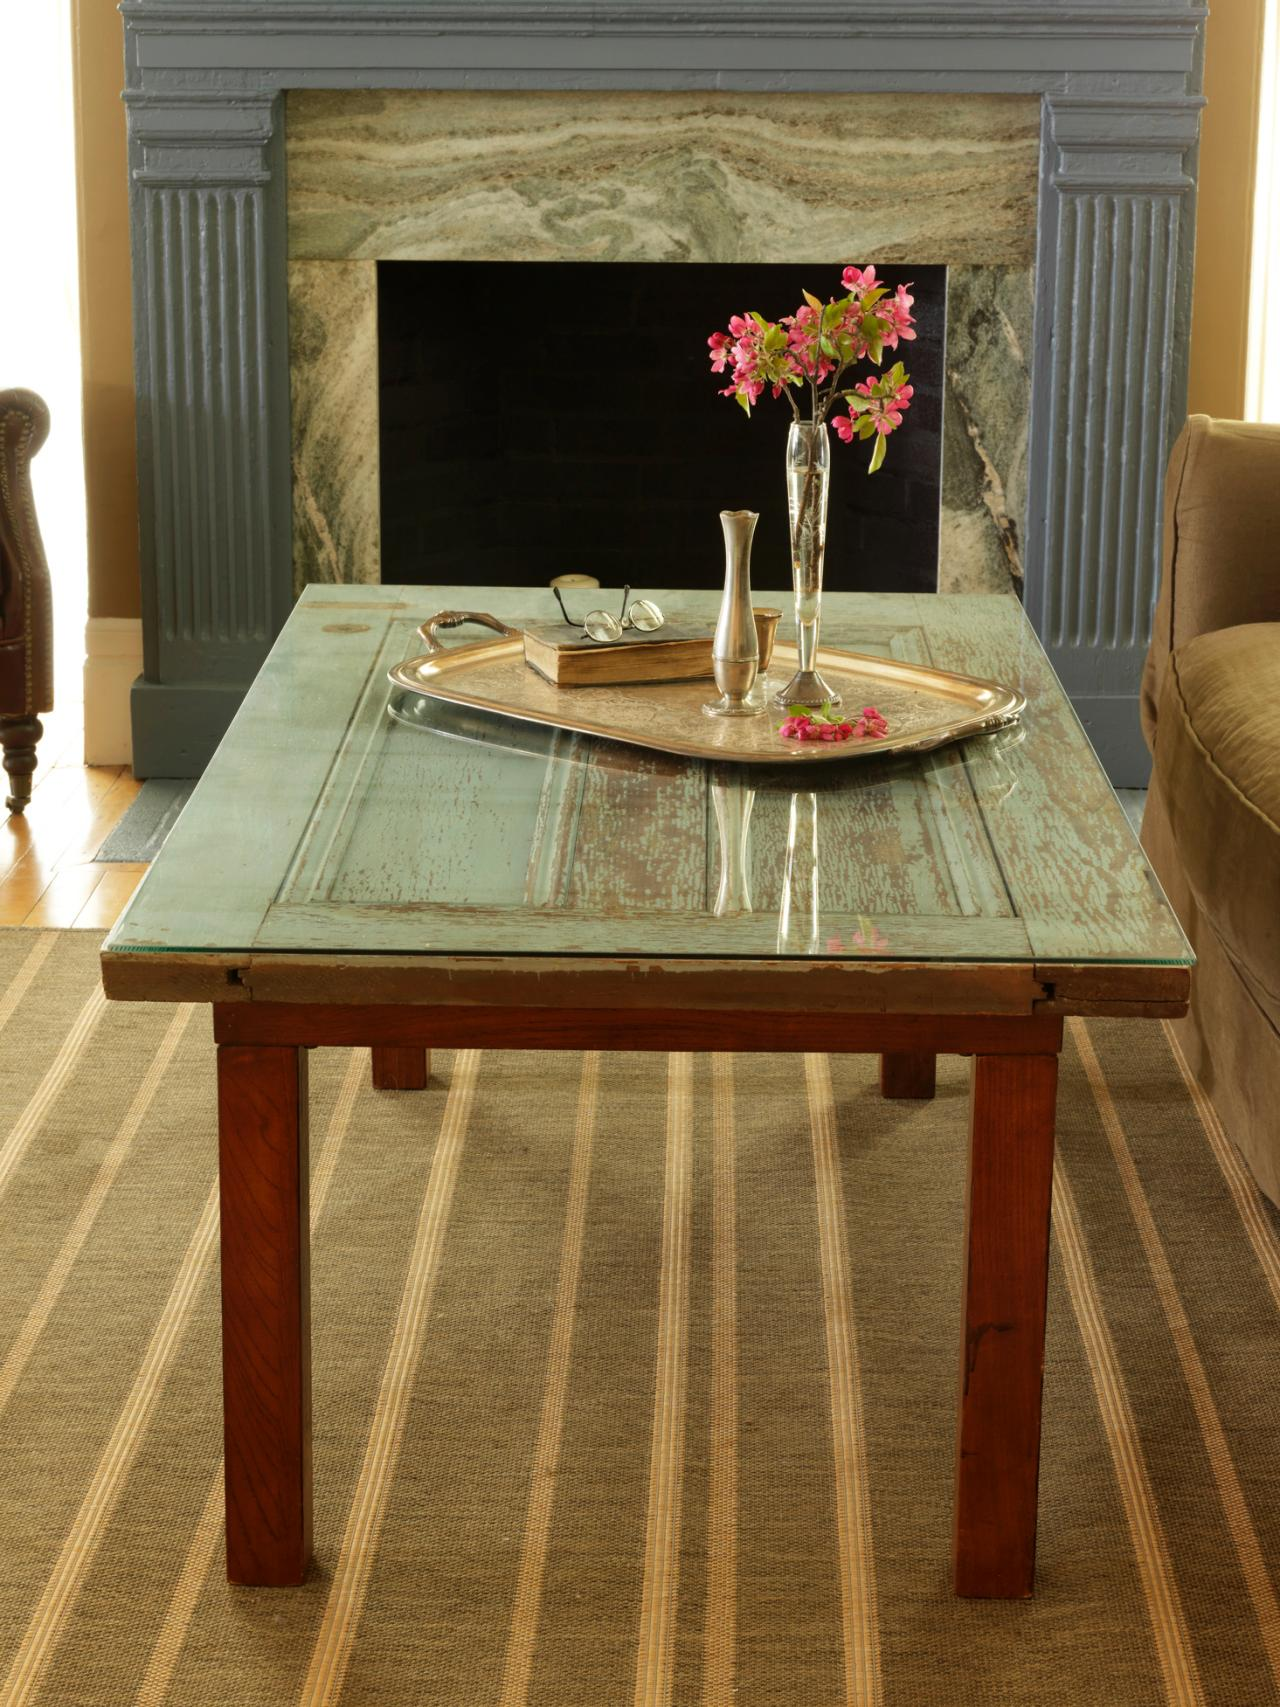 Latest Modern wooden coffee table designs 11